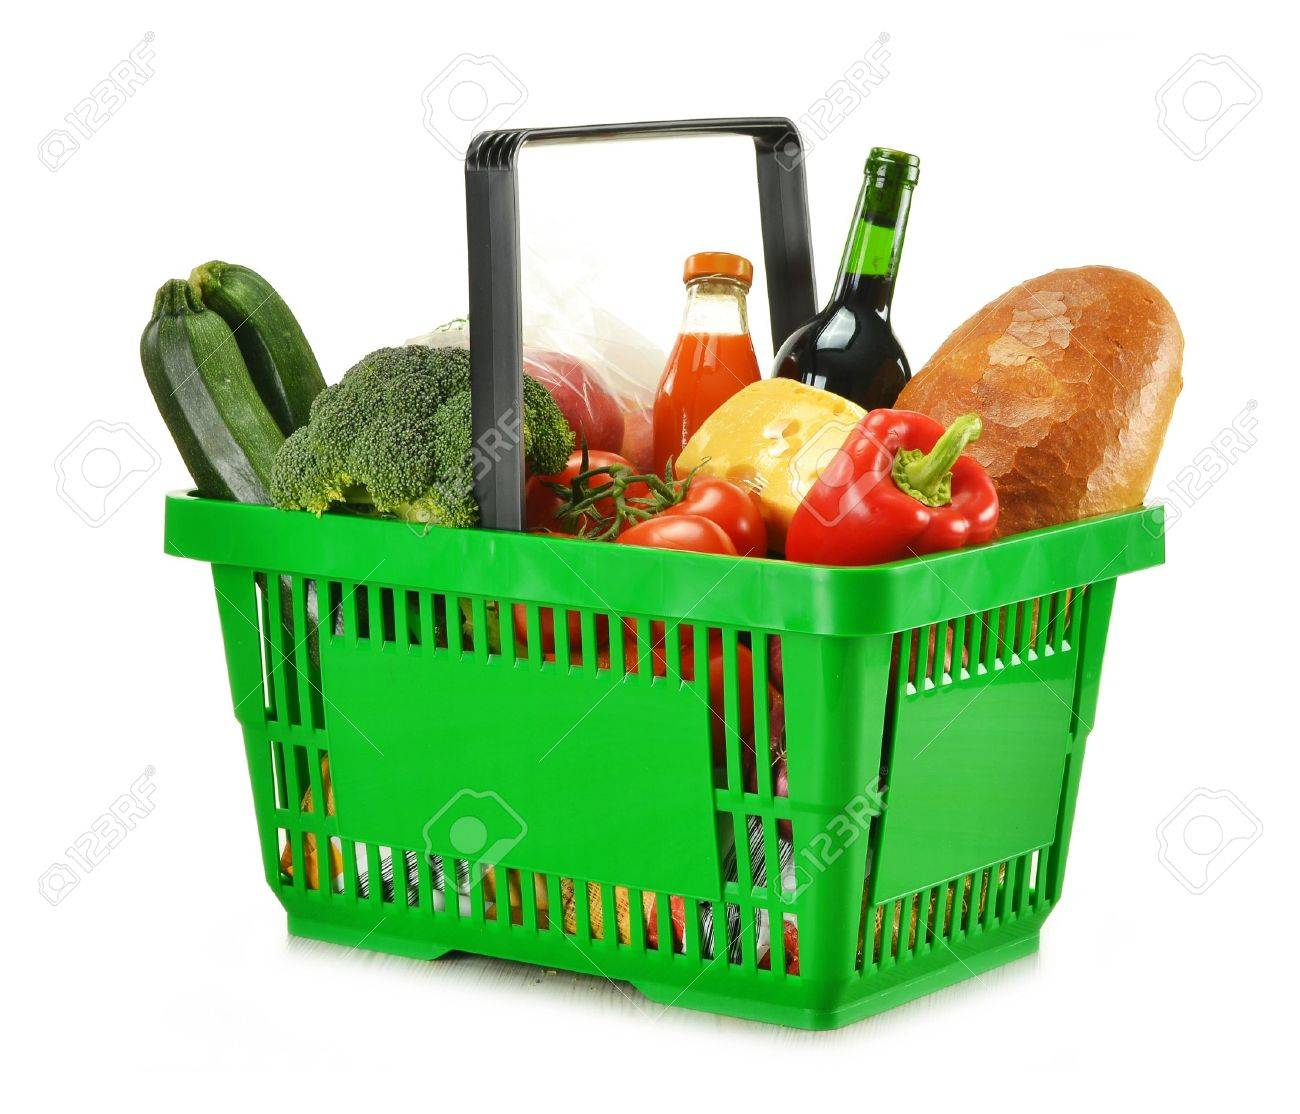 Composition with shopping basket and groceries isolated on white Stock Photo - 11549119